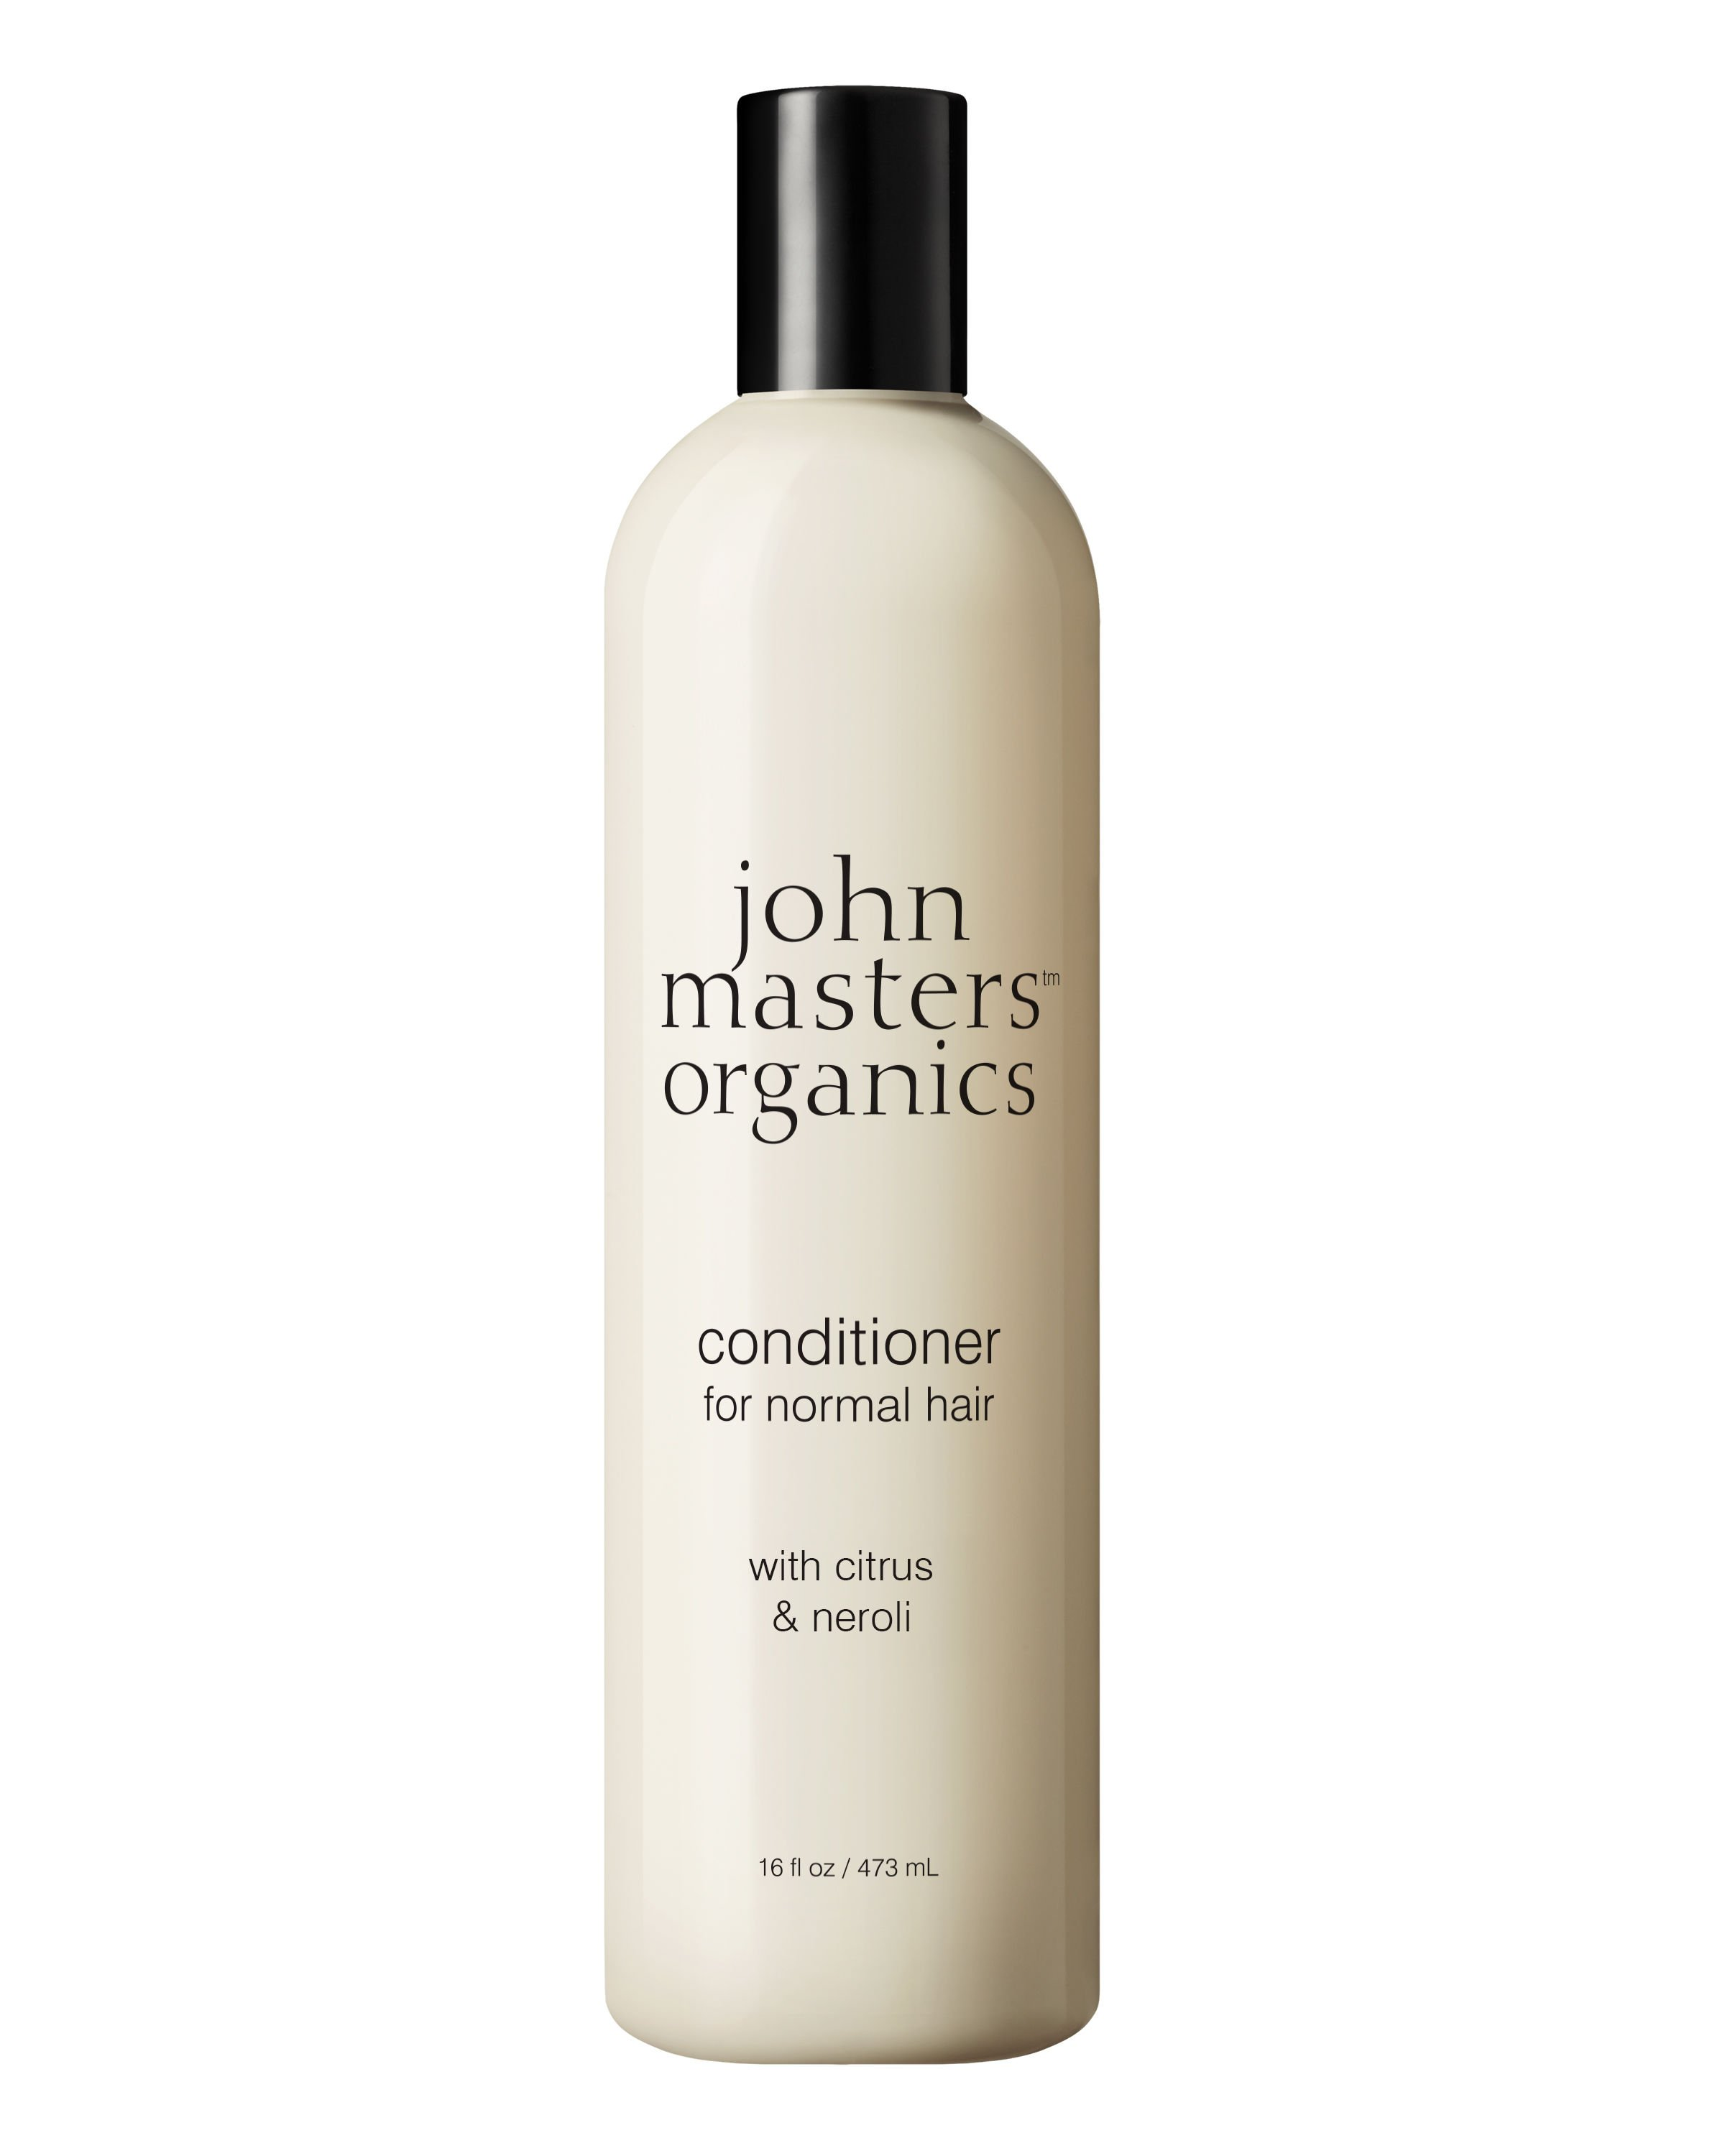 John Masters Organics - Conditioner for Normal Hair Citrus & Neroli Detangler 473 ml